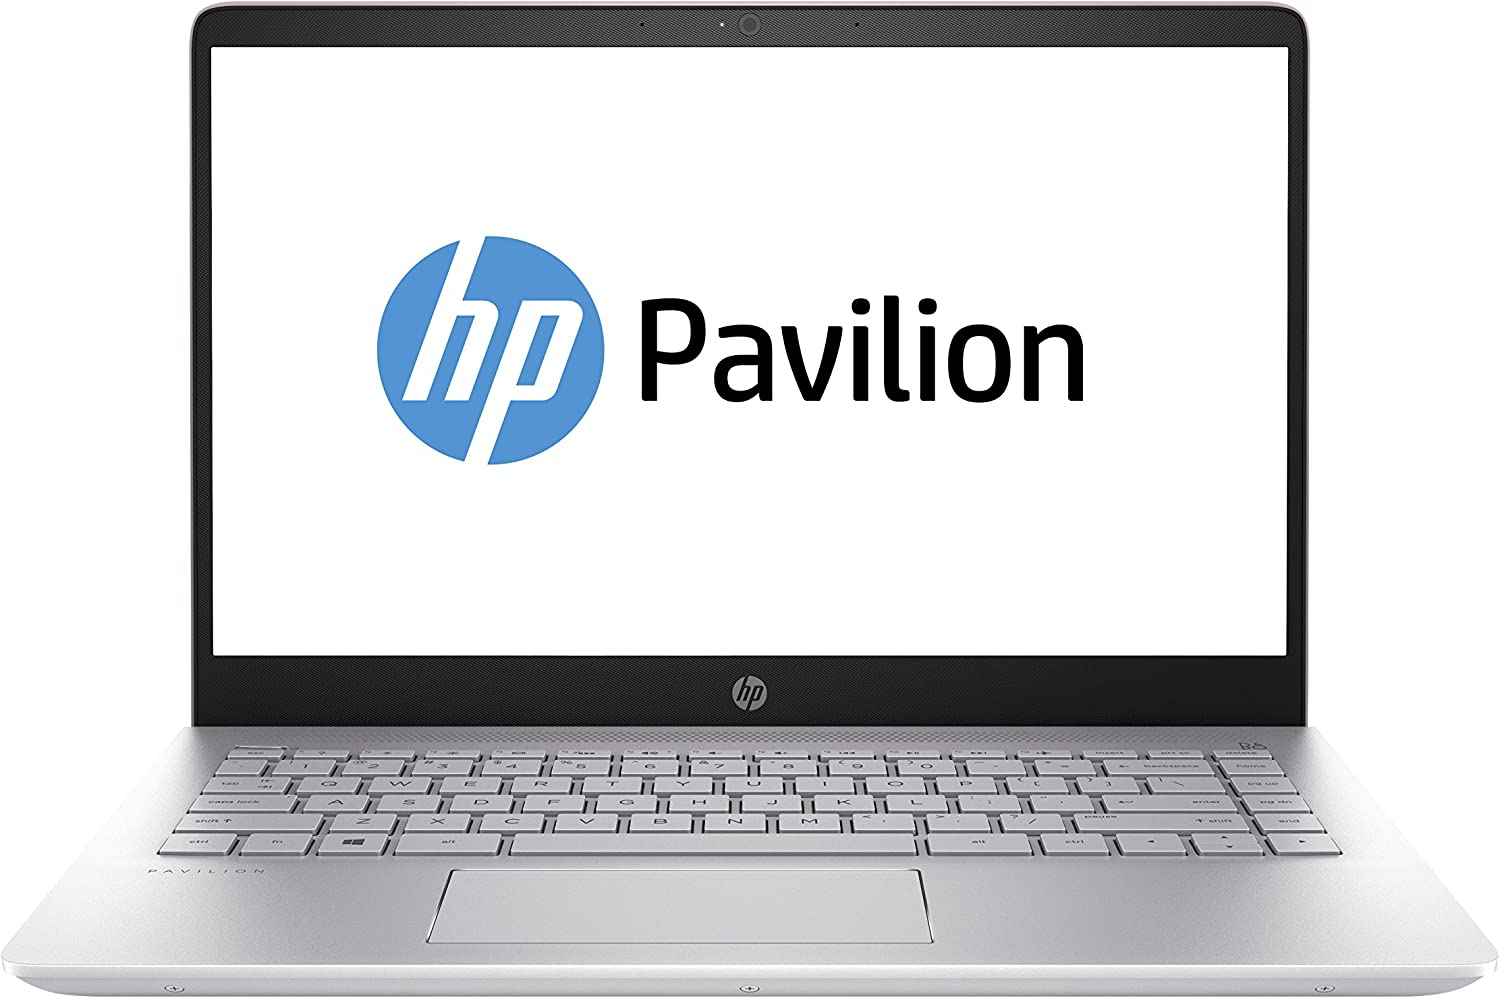 HP Pavilion 14-bf050wm Laptop, 14'' Full HD IPS Mico Edge Display (1920 x 1080), Intel Core i5-7200U, 8GB DDR4 SDRAM, 1TB Hard Drive + 128 SSD, Windows 10 Home